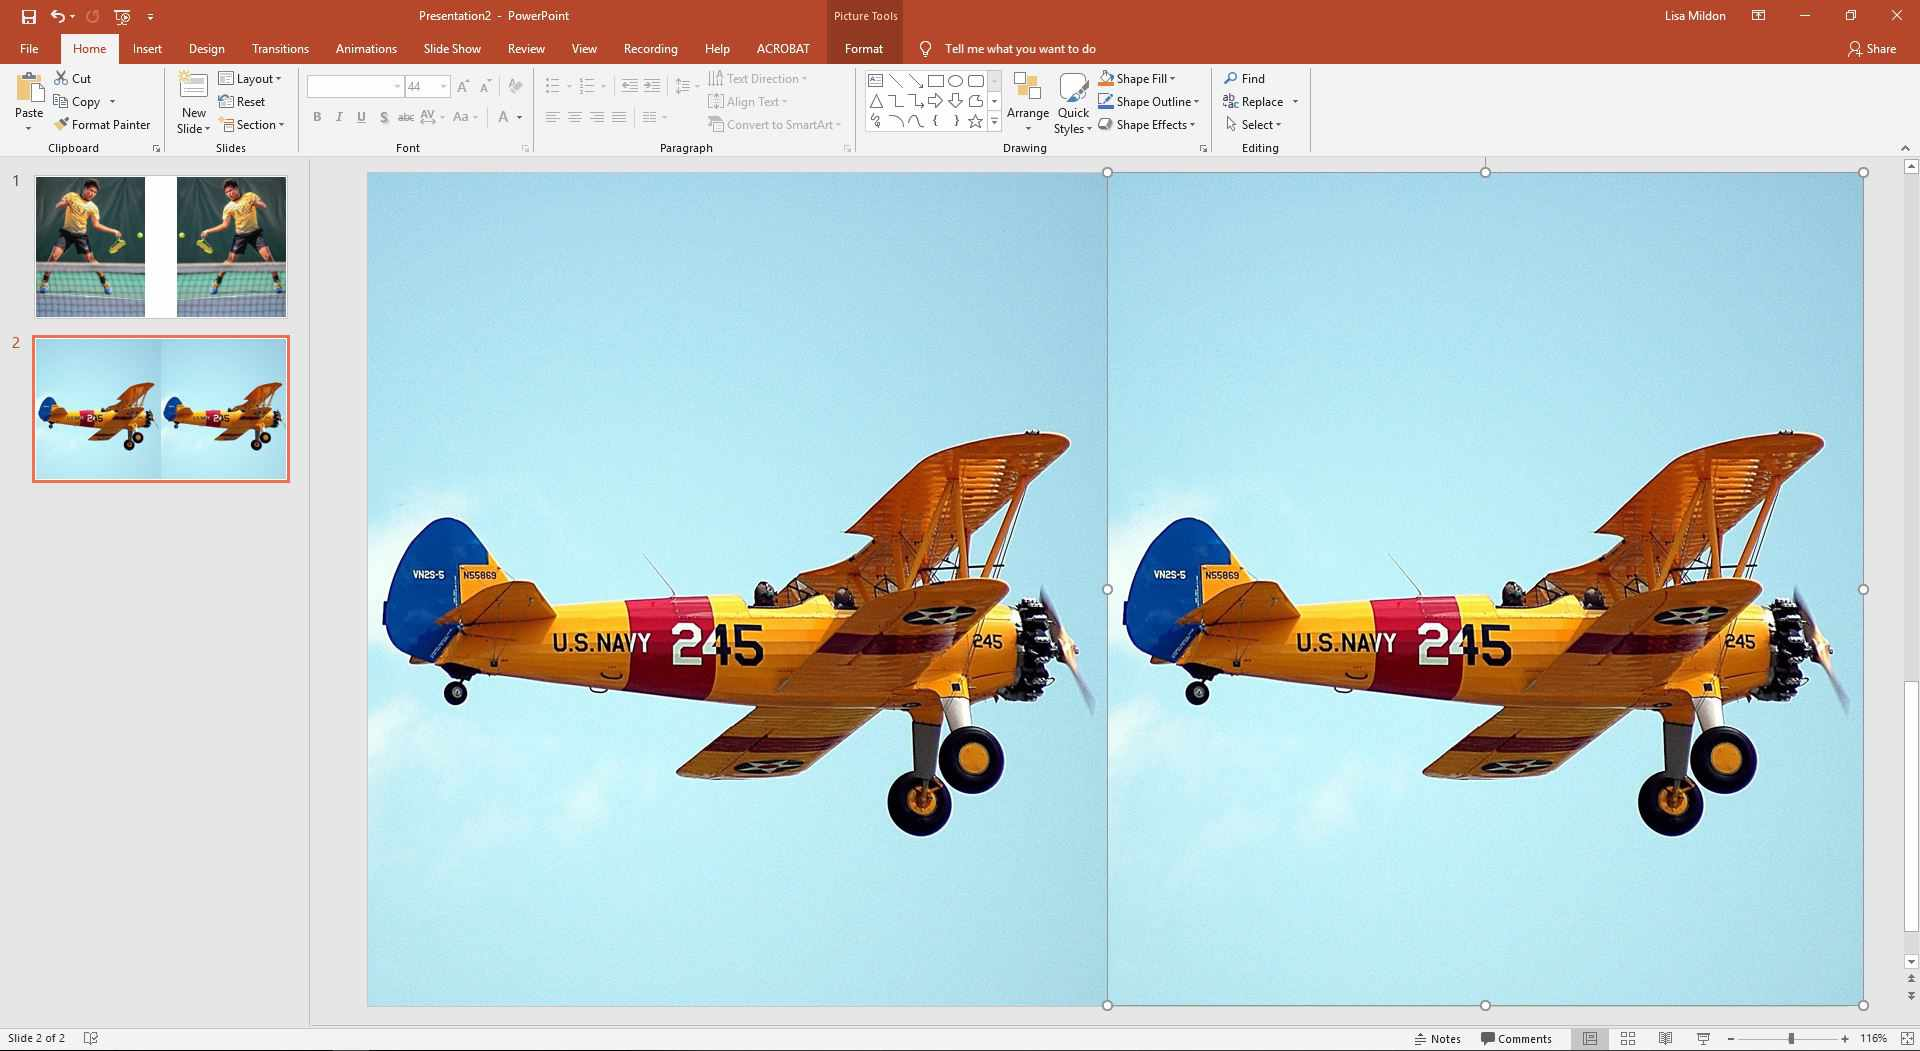 PowerPoint slide showing two airplanes.